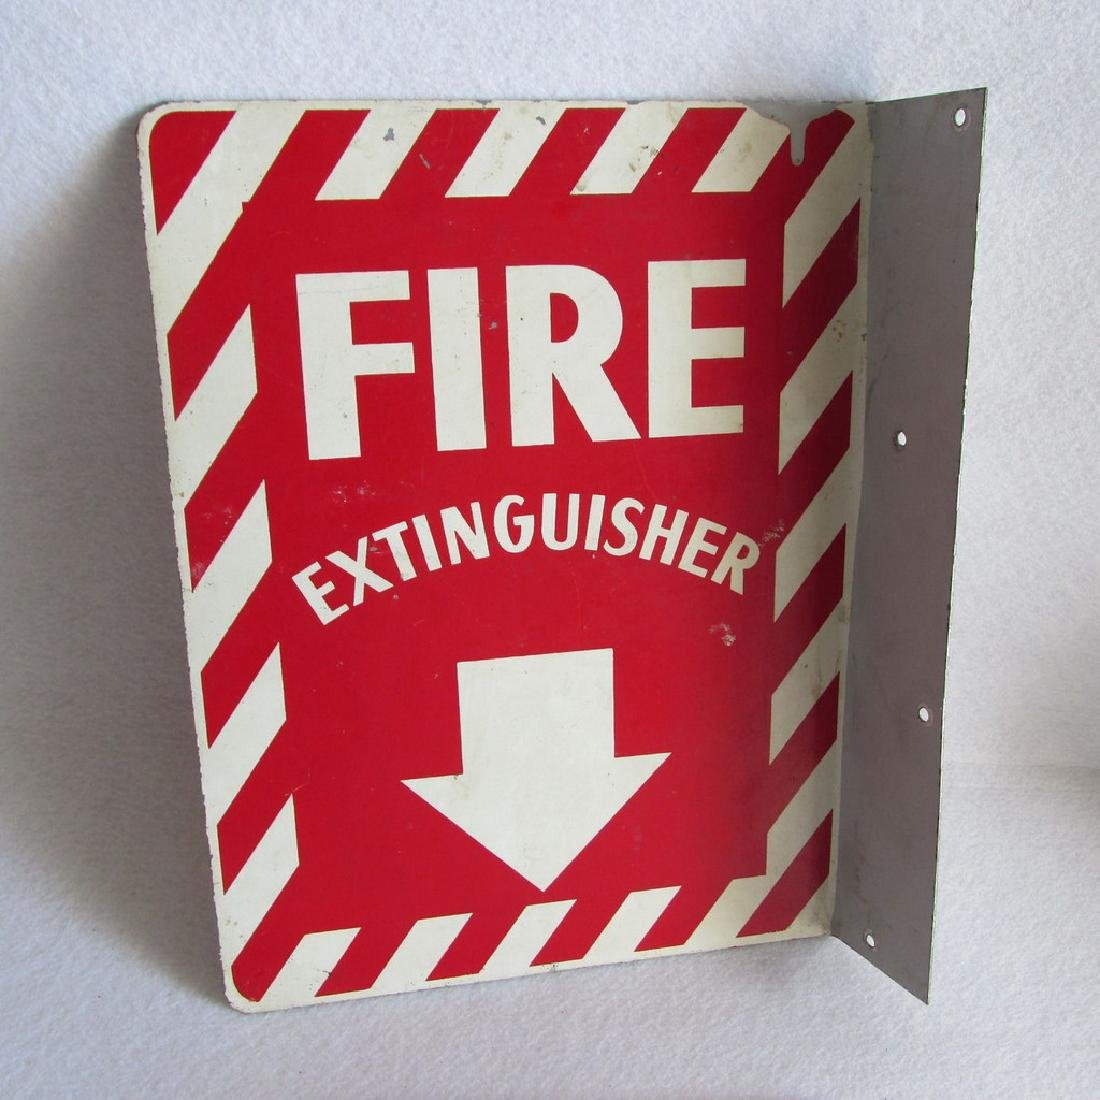 Vintage Fire Extinguisher Sign, Industrial Metal Flange